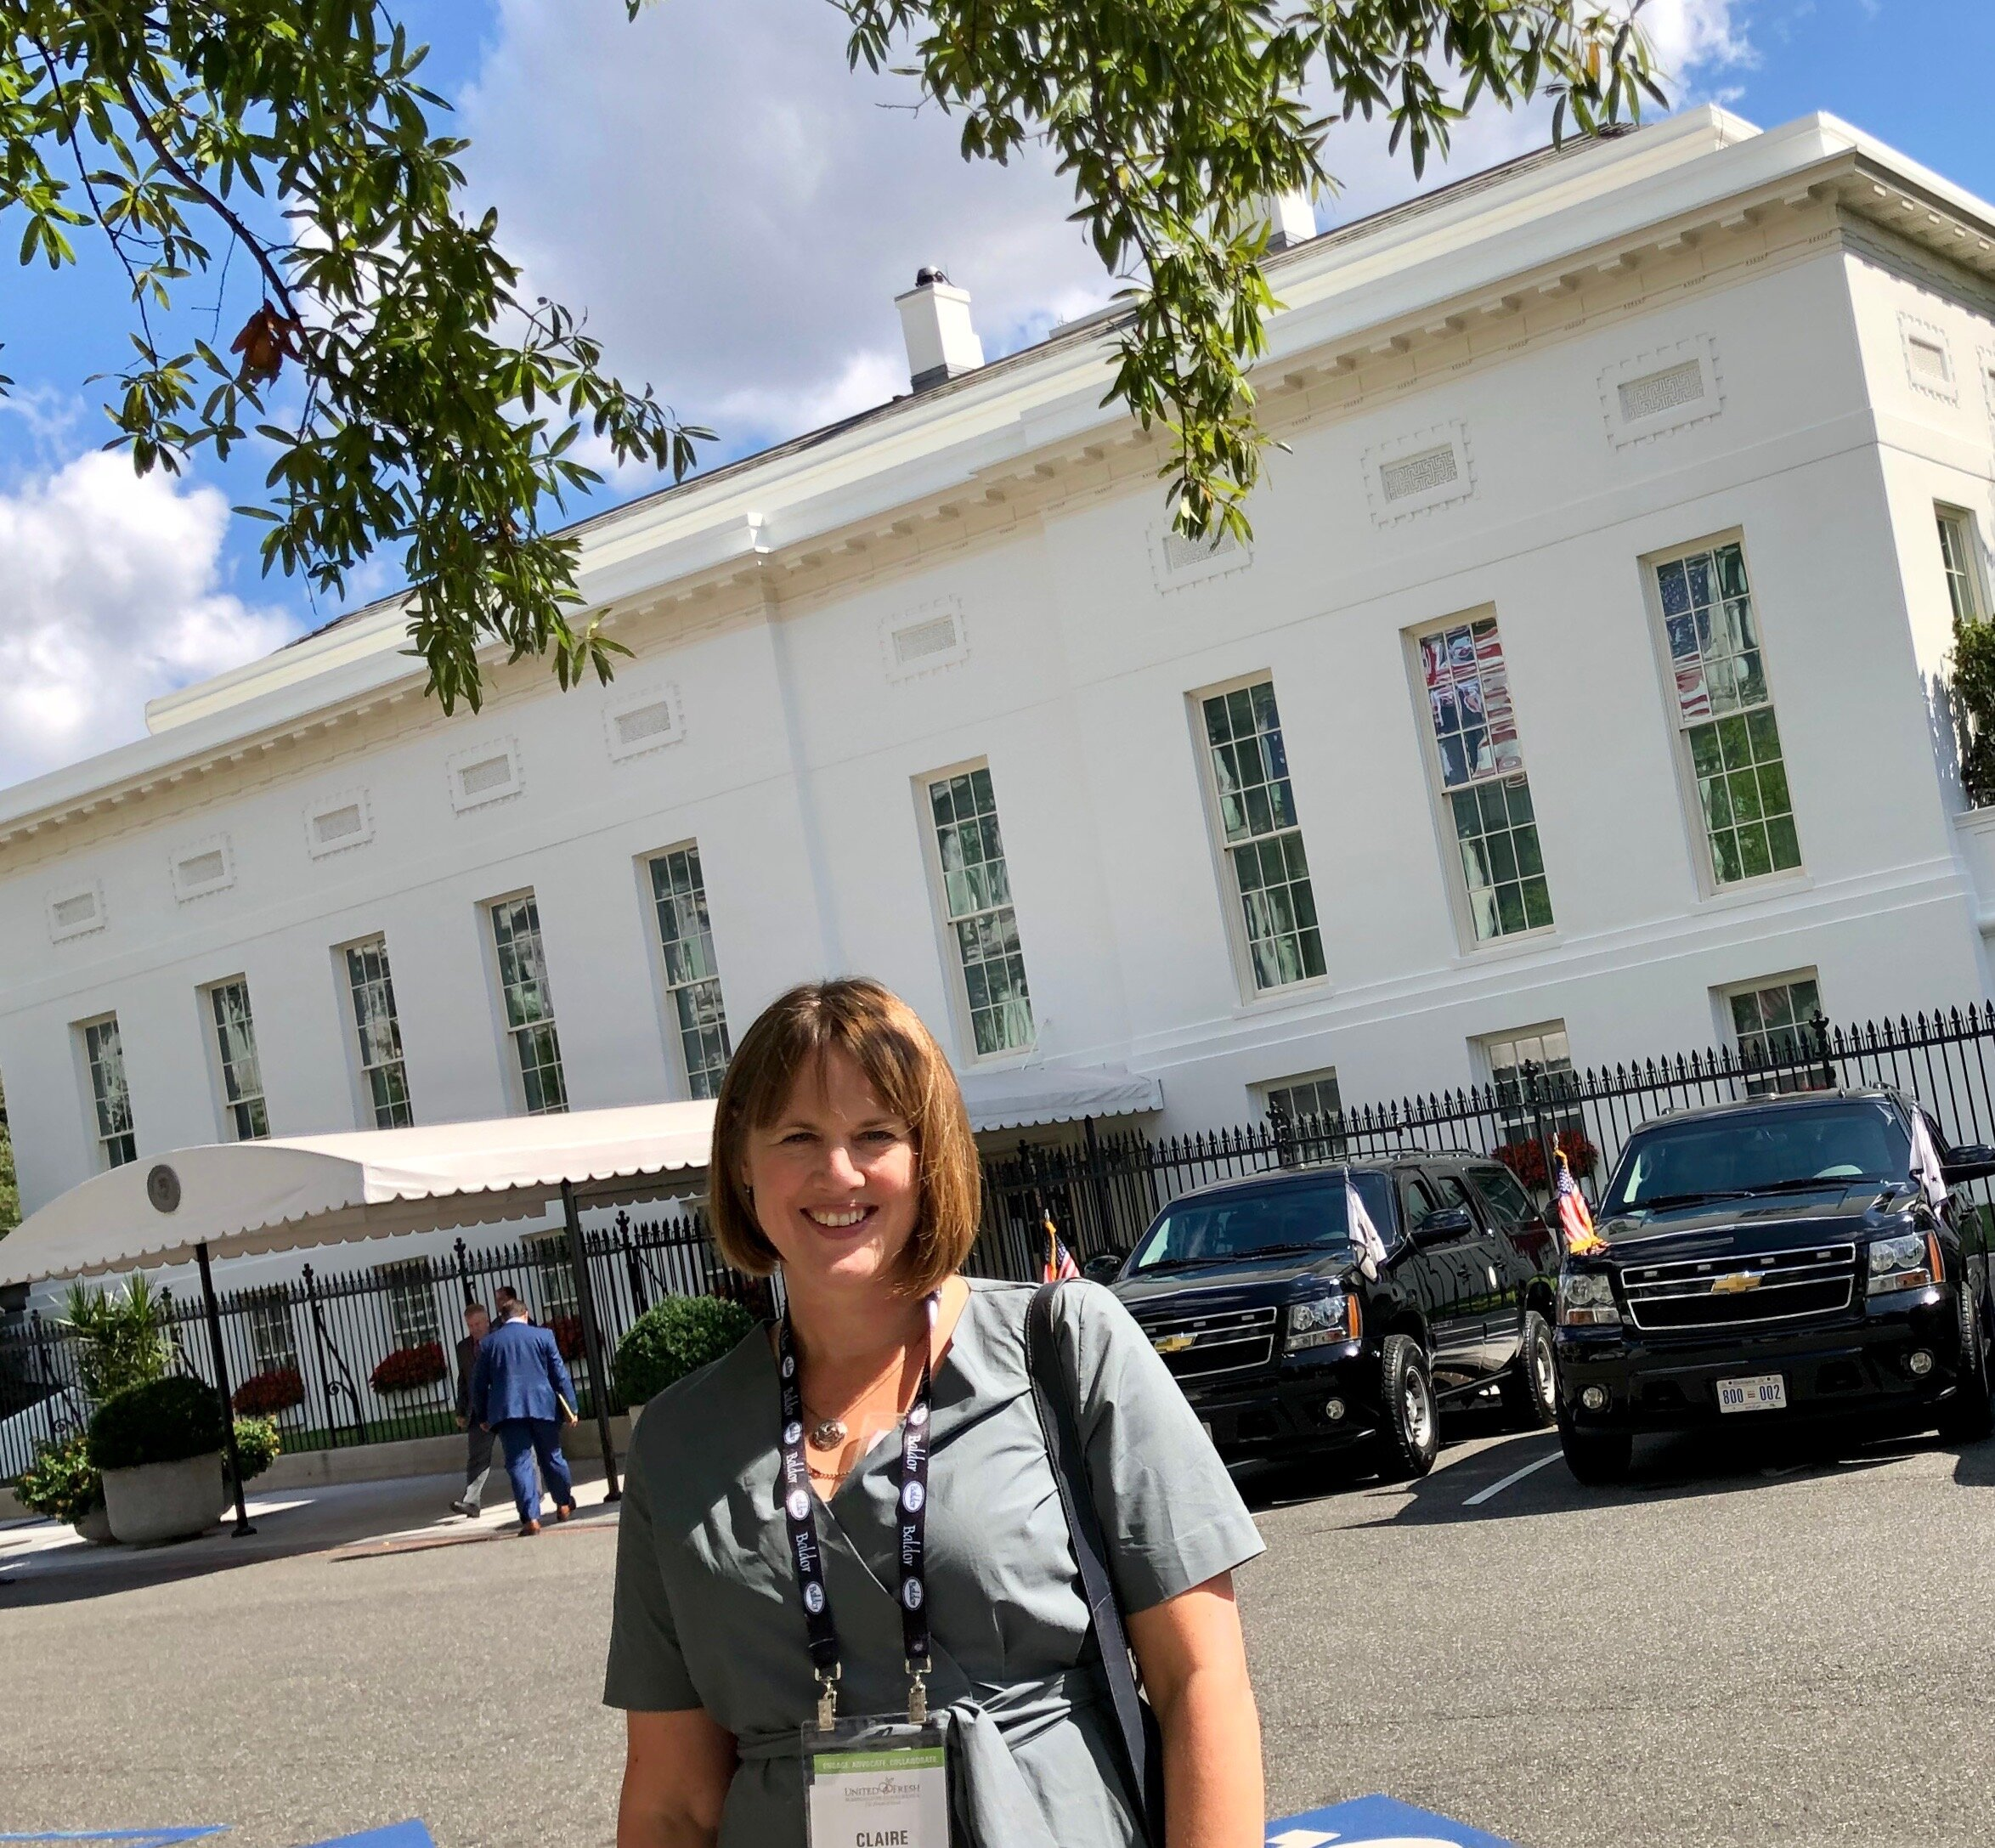 Claire pictured at the West Wing of The White House